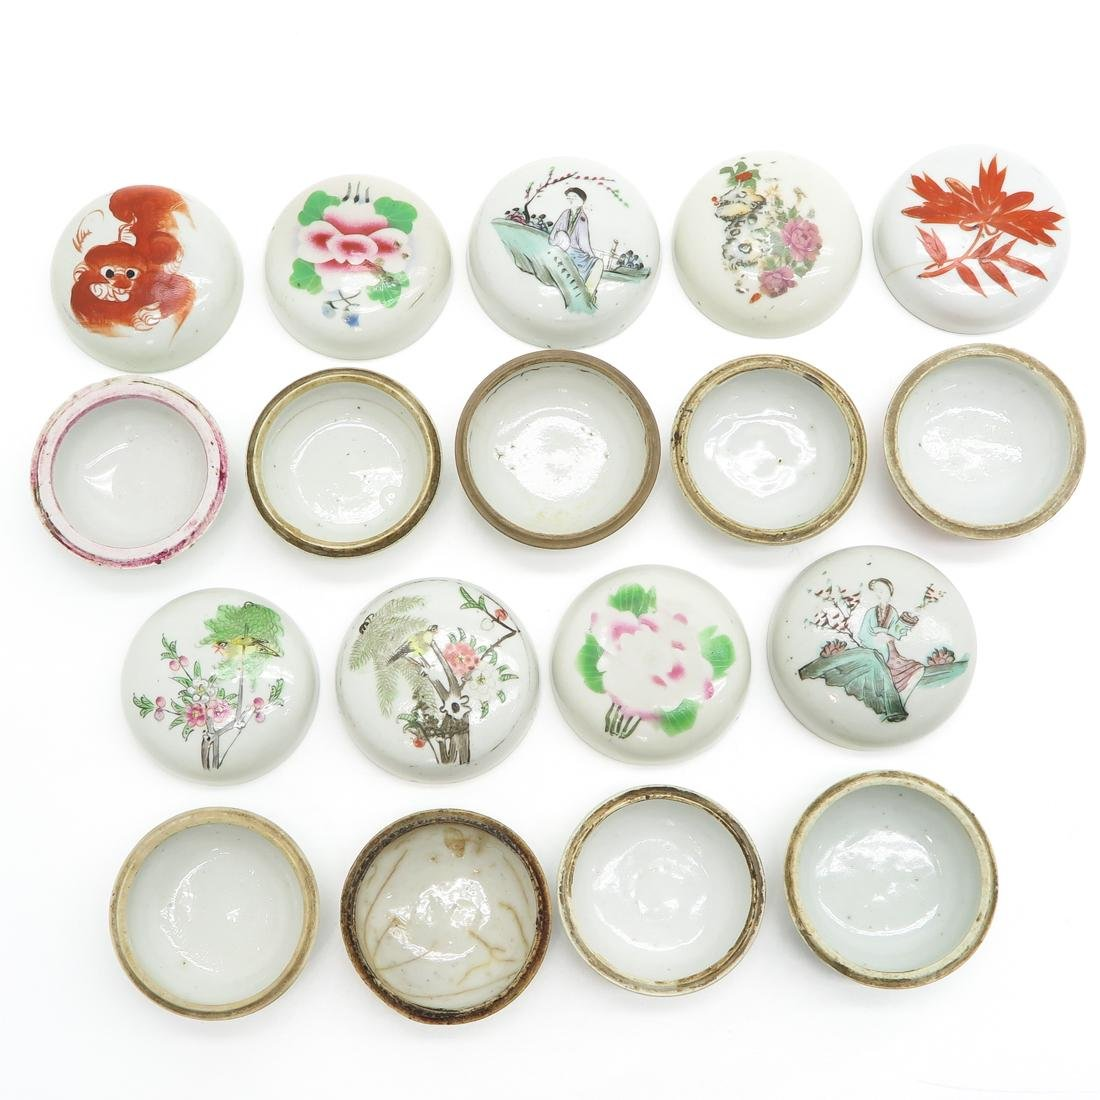 Lot of 9 Small Covered Jars - 5